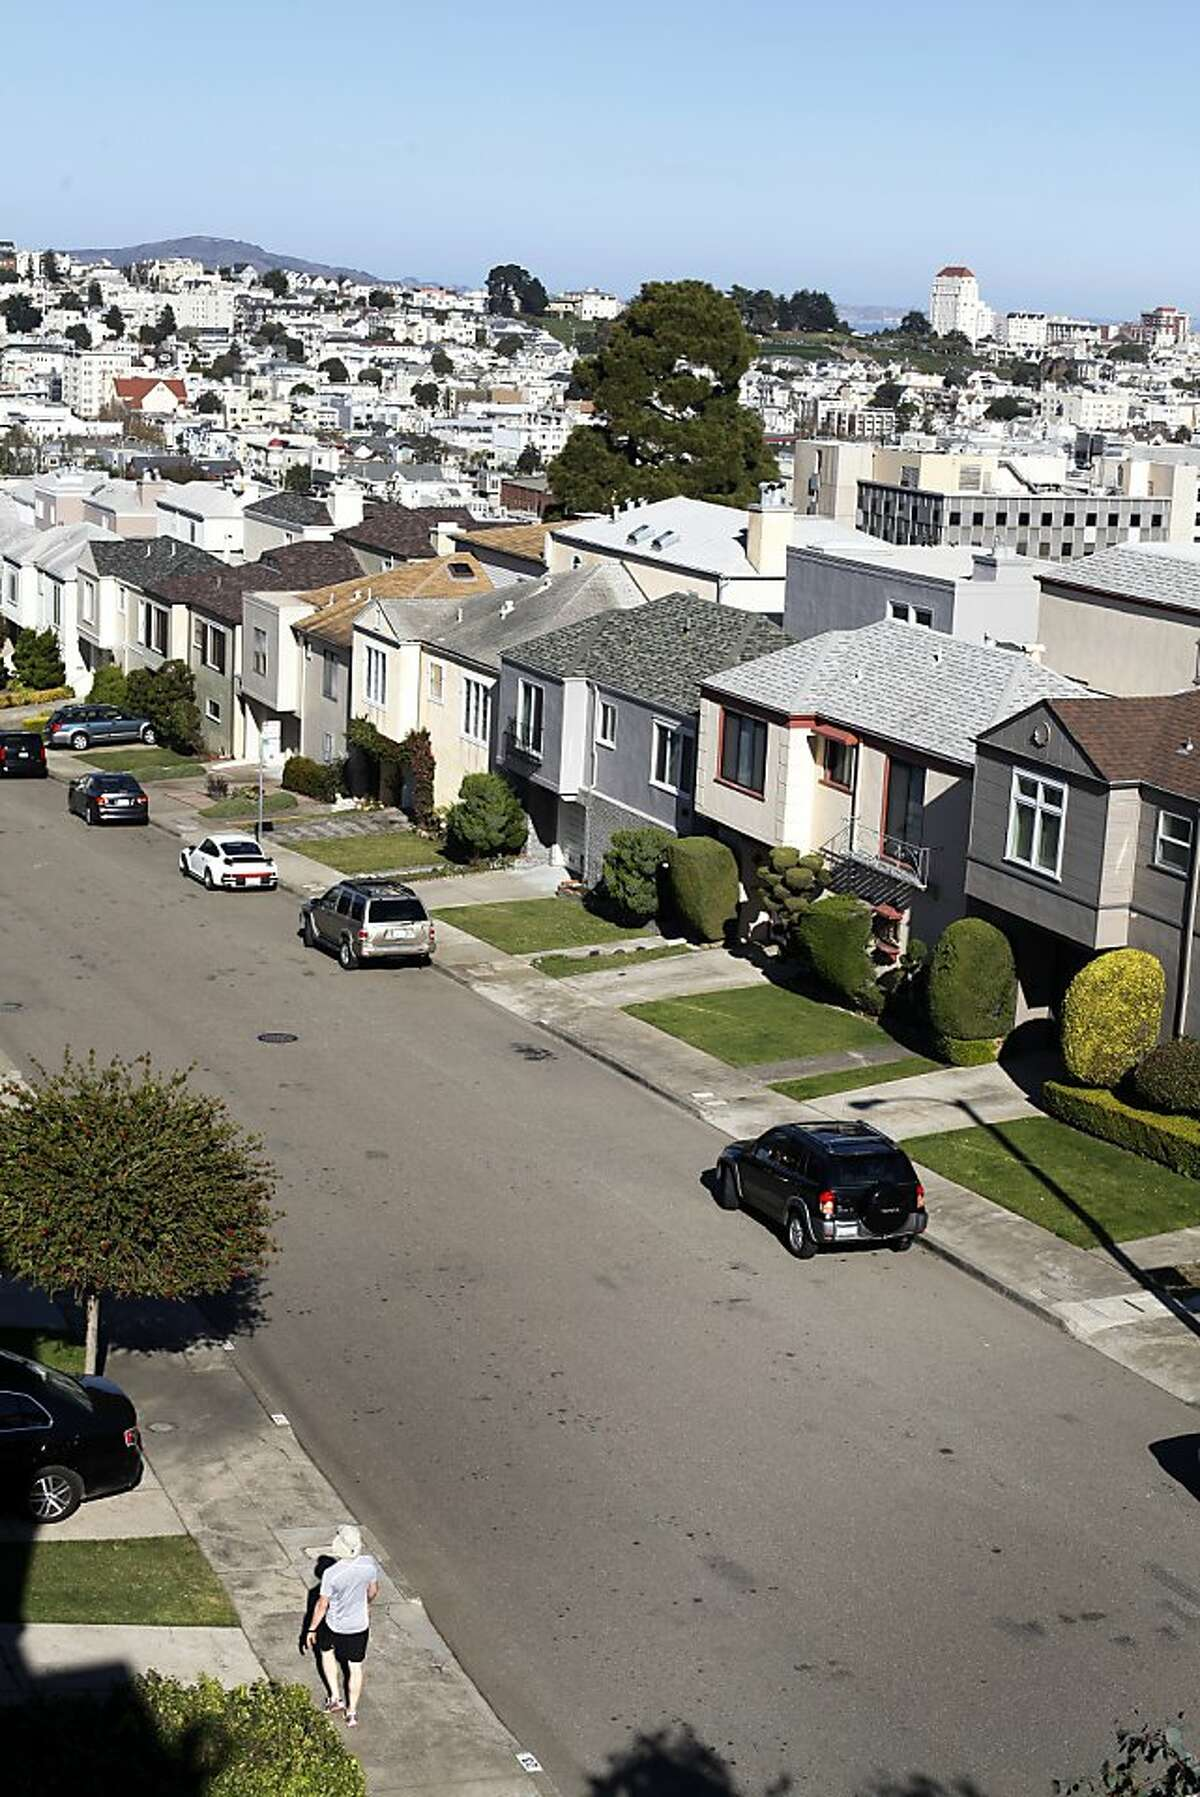 Fortuna Avenue is seen looking north from a rooftop on November 23, 2013 in the Anza Vista neighborhood of San Francisco, Calif.